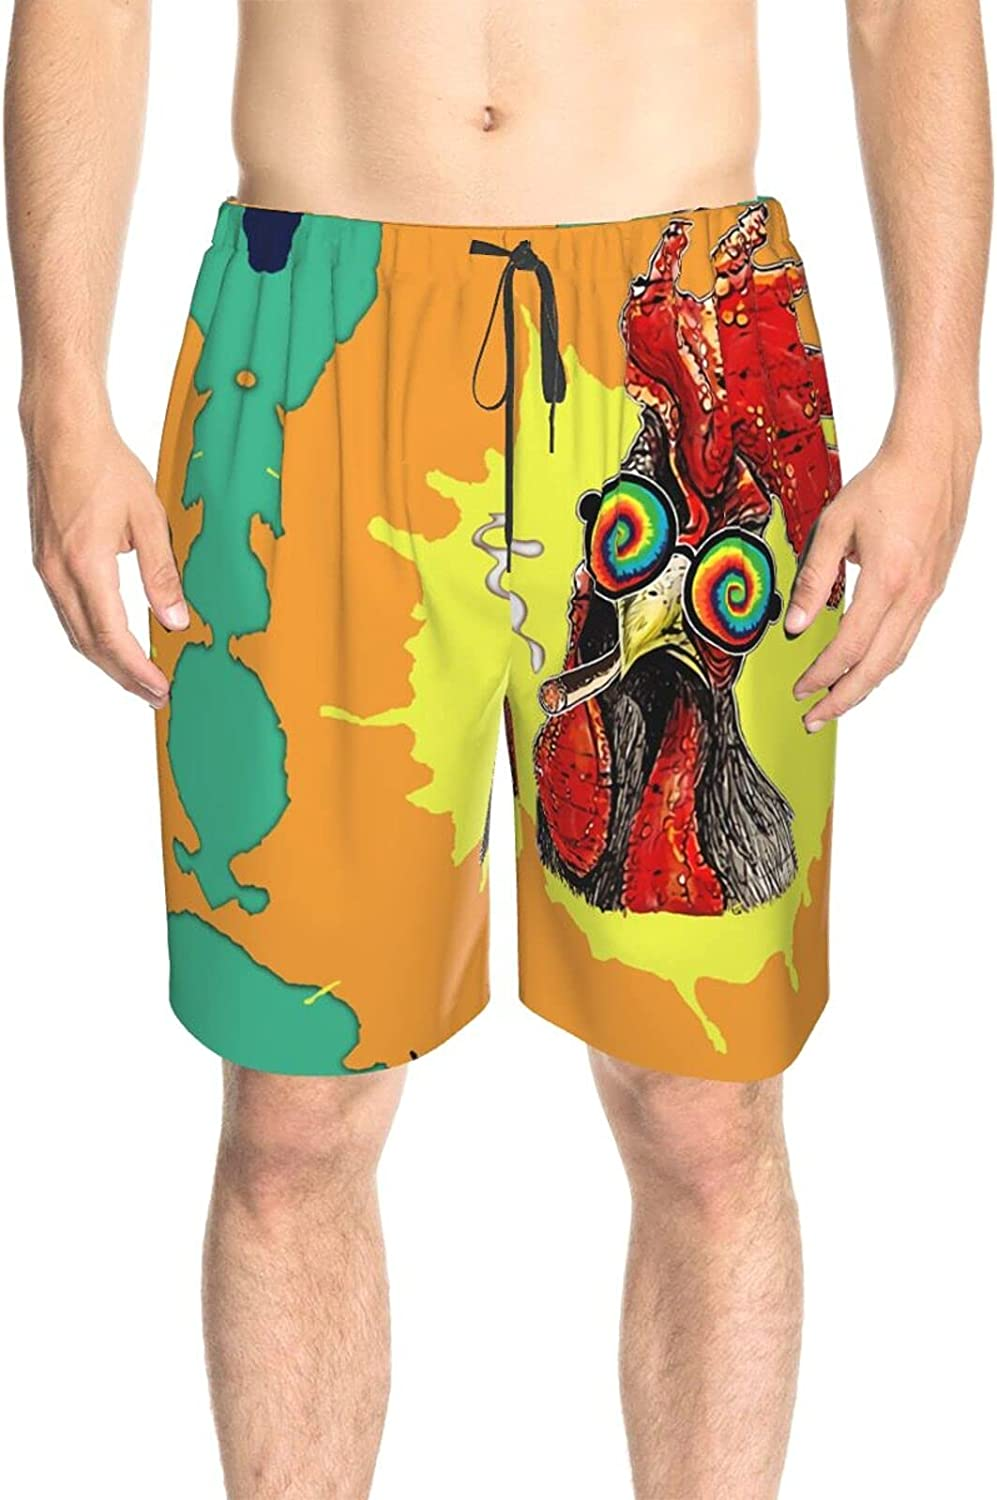 JINJUELS Mens Swim Trunks Smoking Rooster Beach Board Shorts Quick Dry Cool Board Shorts Swimwear with Mesh Lining